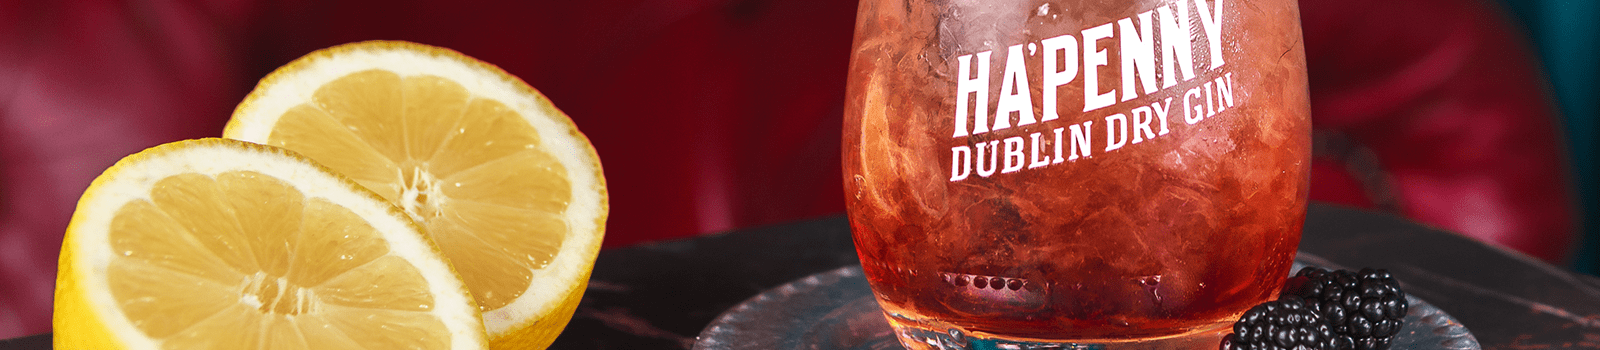 Ha'Penny Dublin Dry Gin, Alltech Beverage Division Ireland, Trajectory Beverage Partners